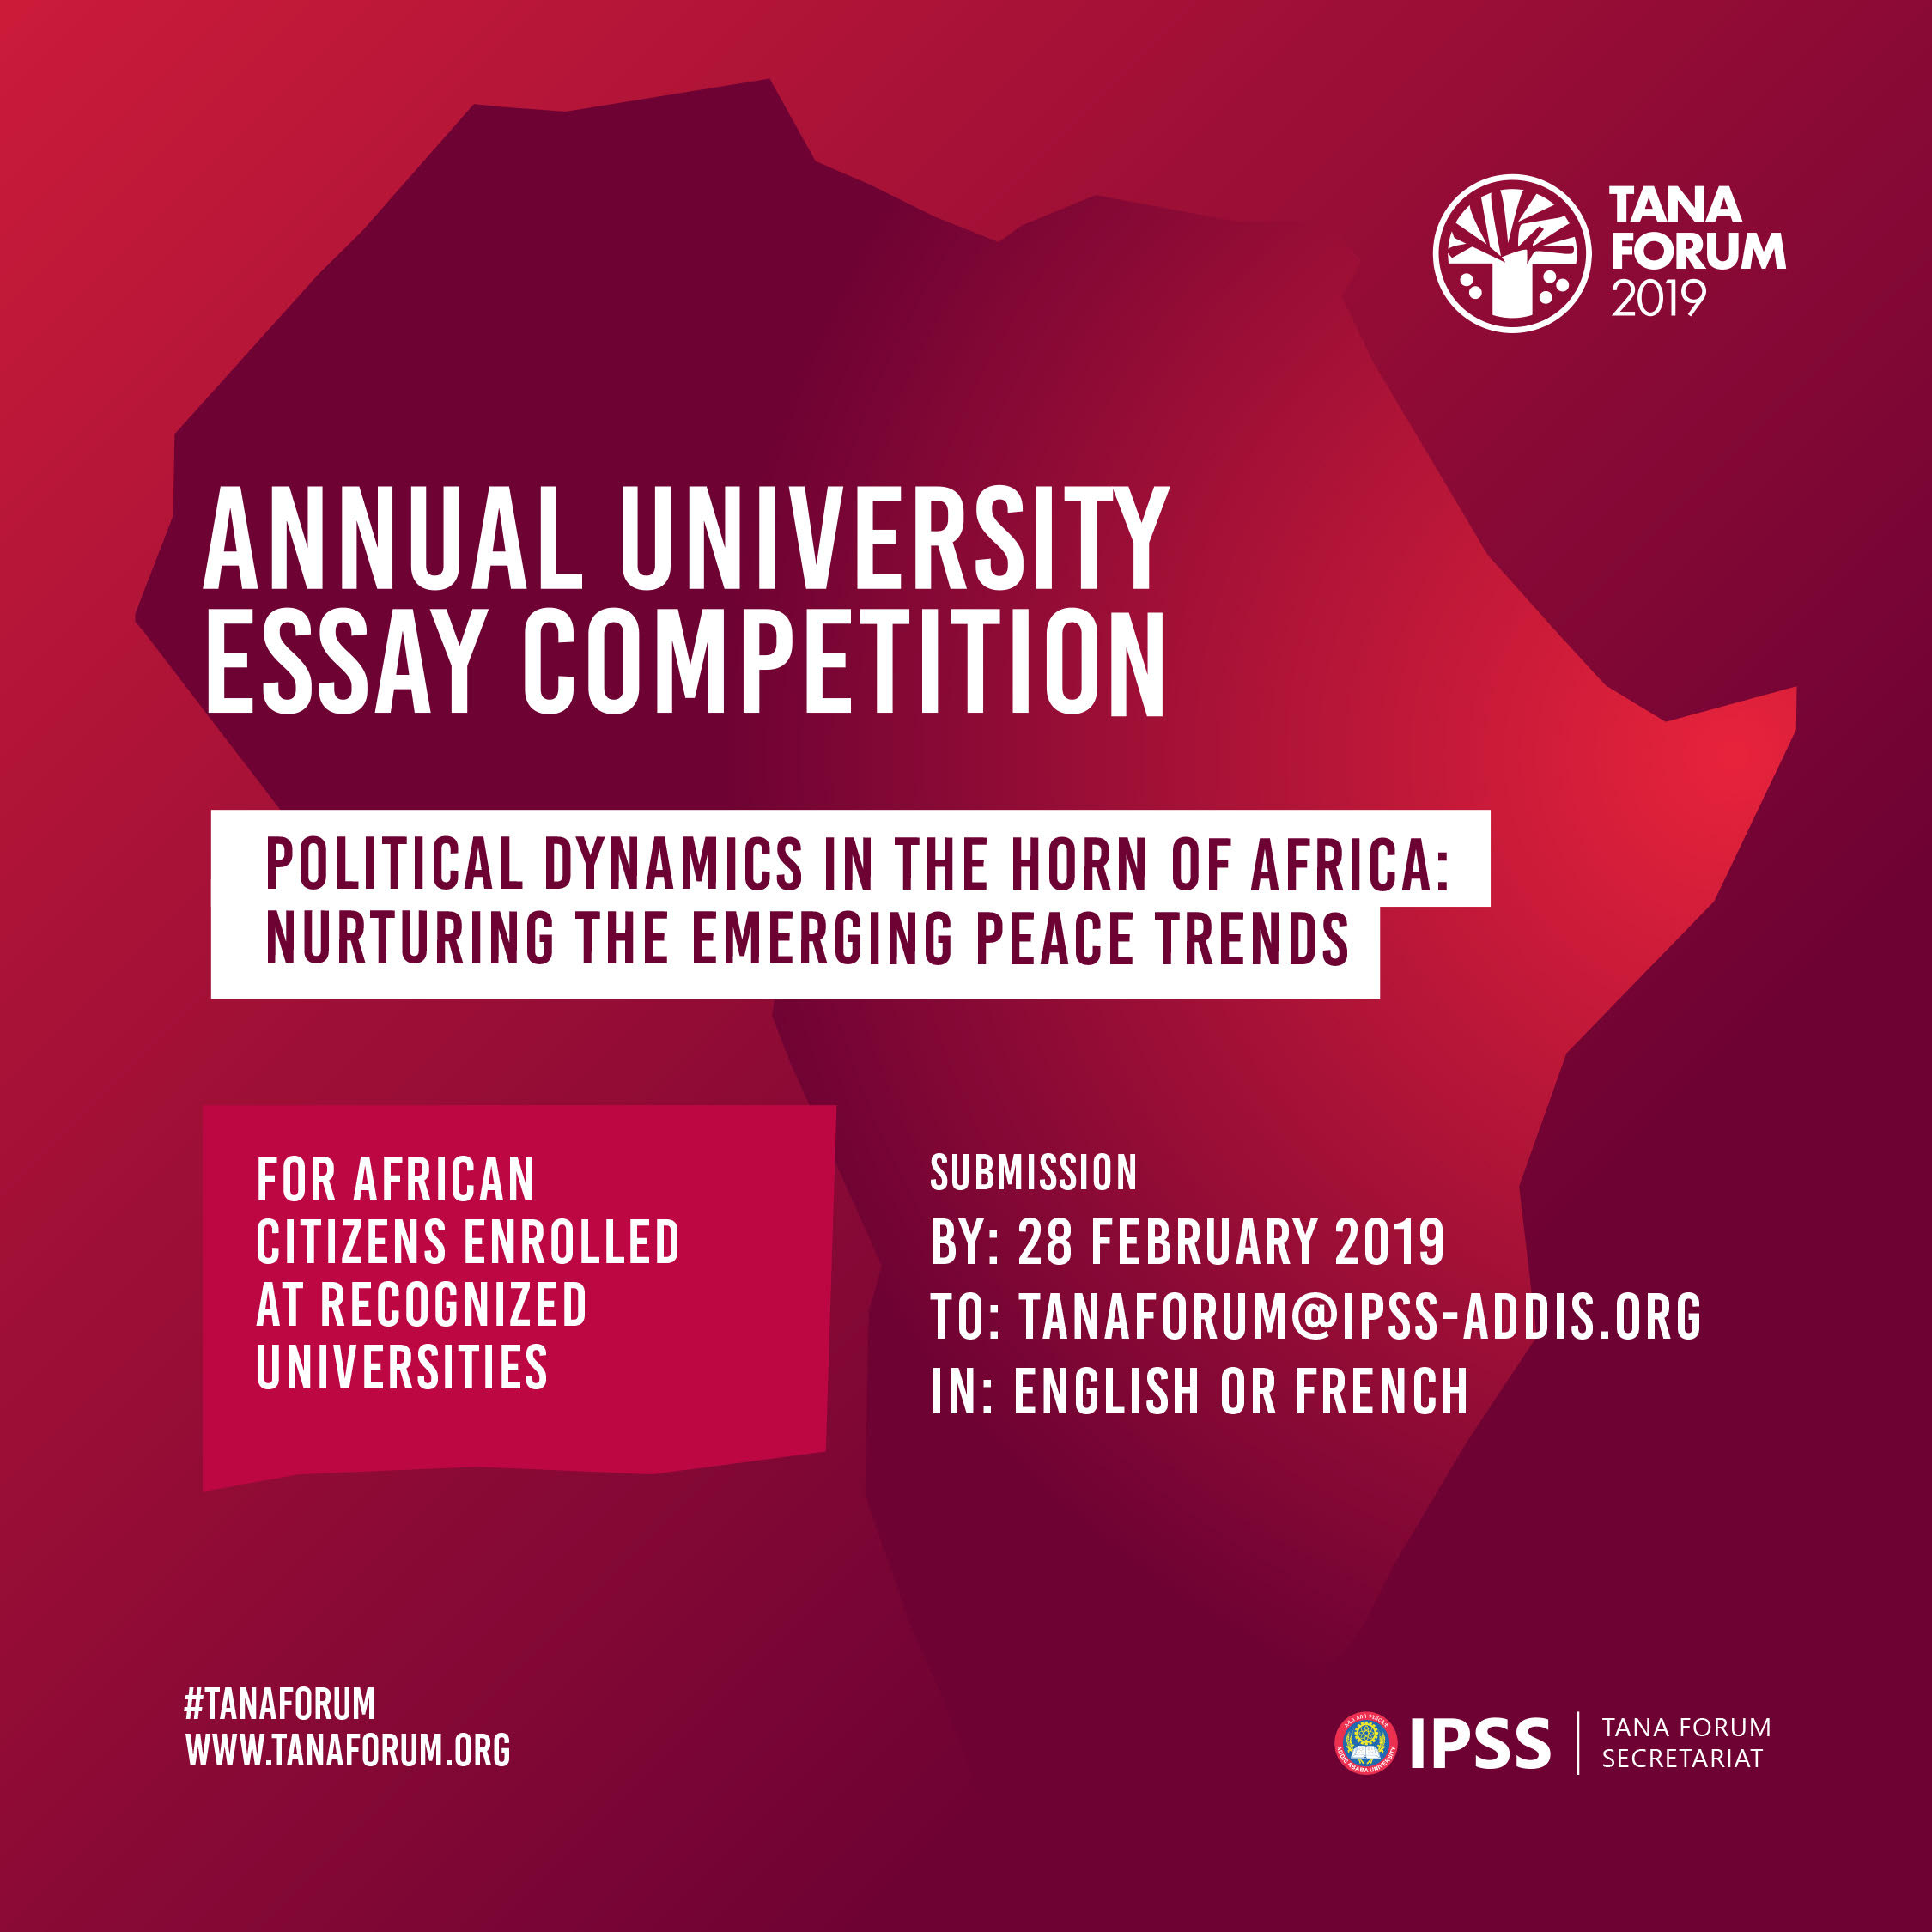 012 Essay Example Comp Stirring Forum Forumias Test Series 2019 Chevening Undergraduate Full